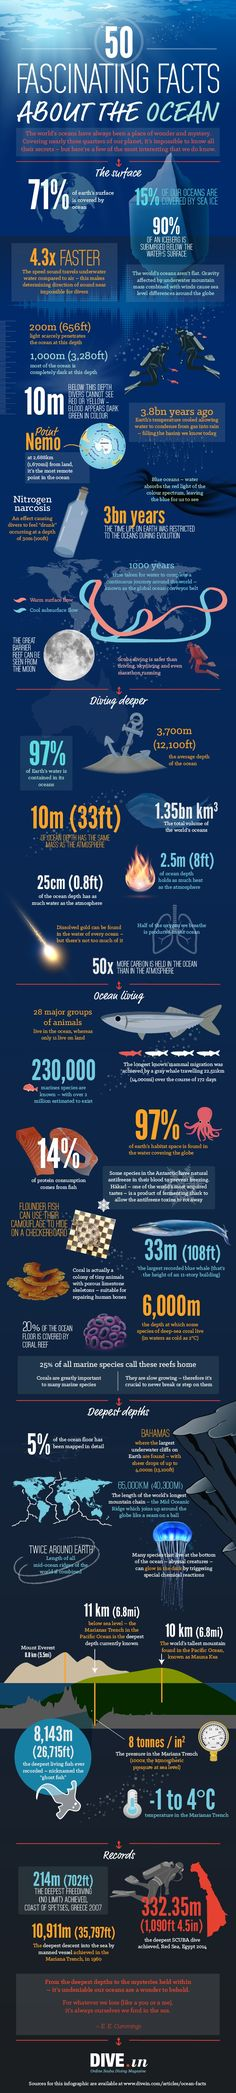 50 facts about the ocean